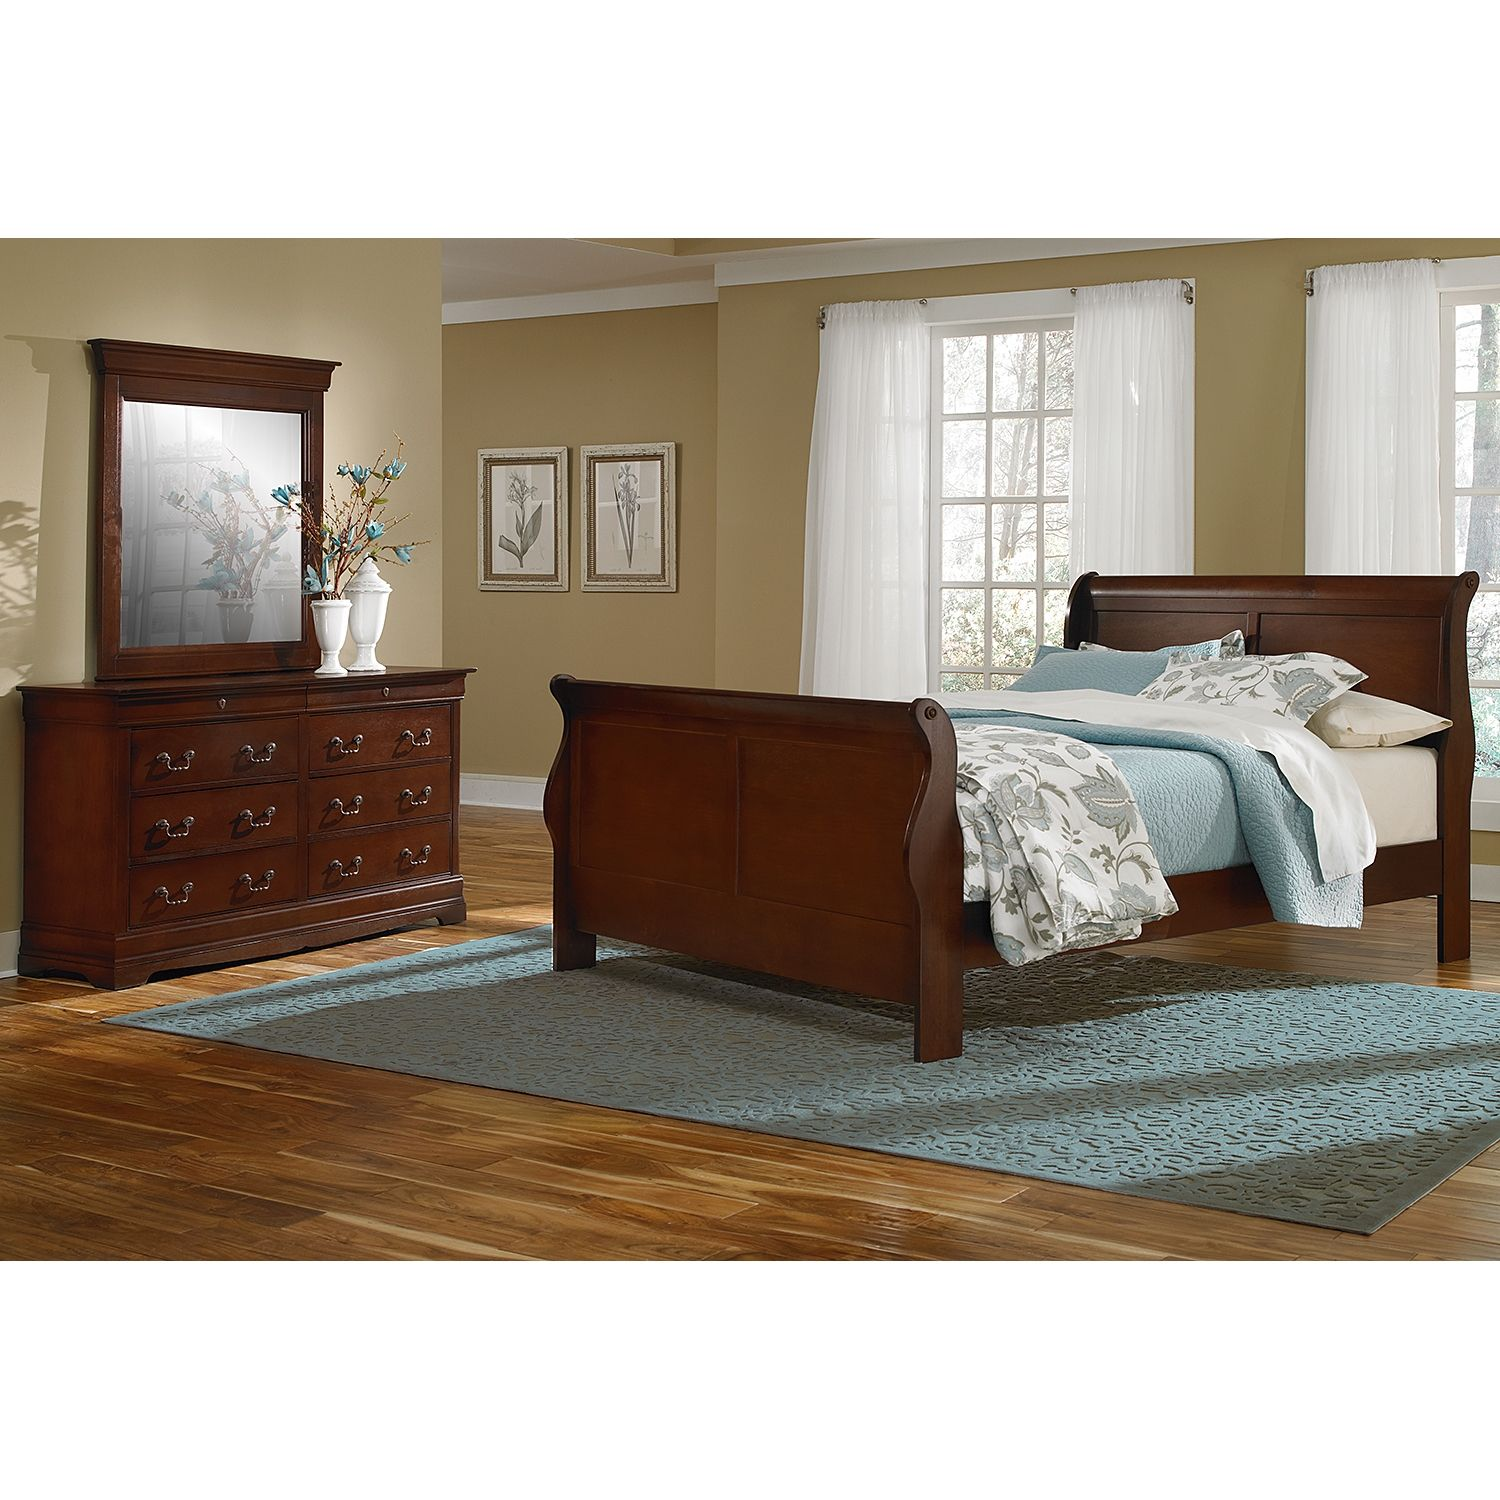 Neo Classic Cherry II 5 Pc. Twin Bedroom | Value City Furniture